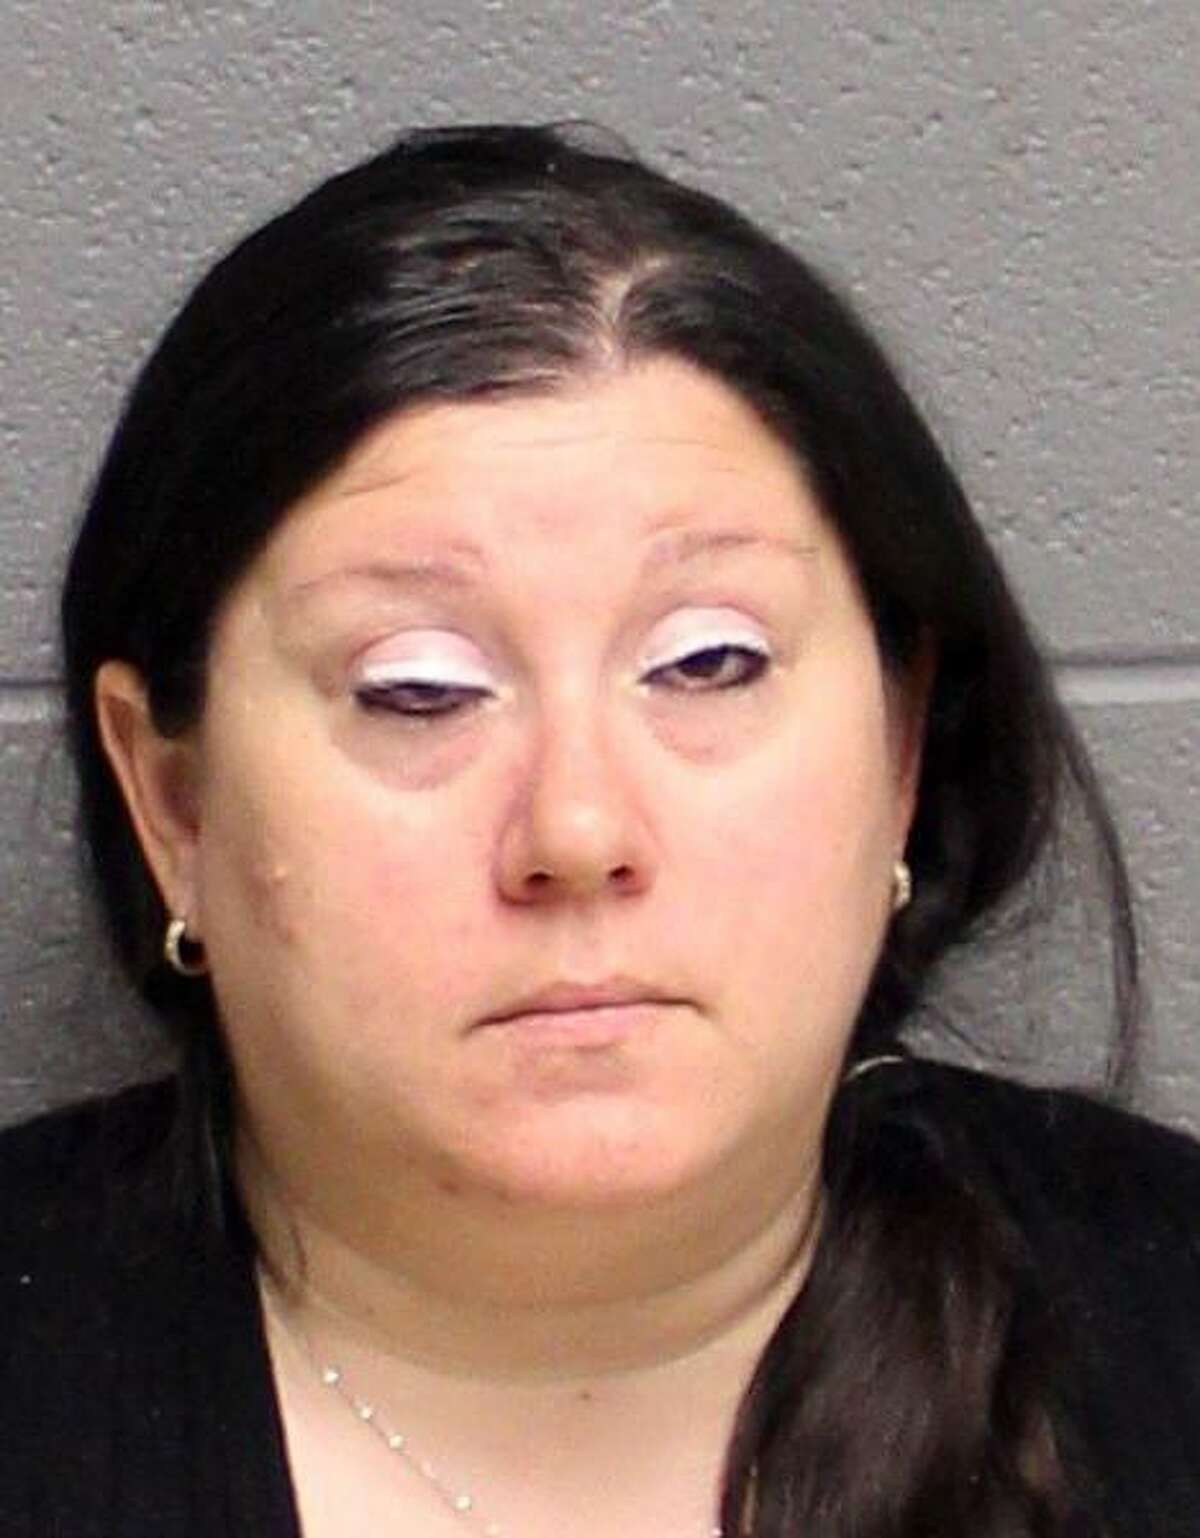 Lisa Nussbaum, of Monroe, was arrested Monday, March 6, 2017 and charged with risk of injury to a minor after she allegedly let her 10-year-old son drive the car.